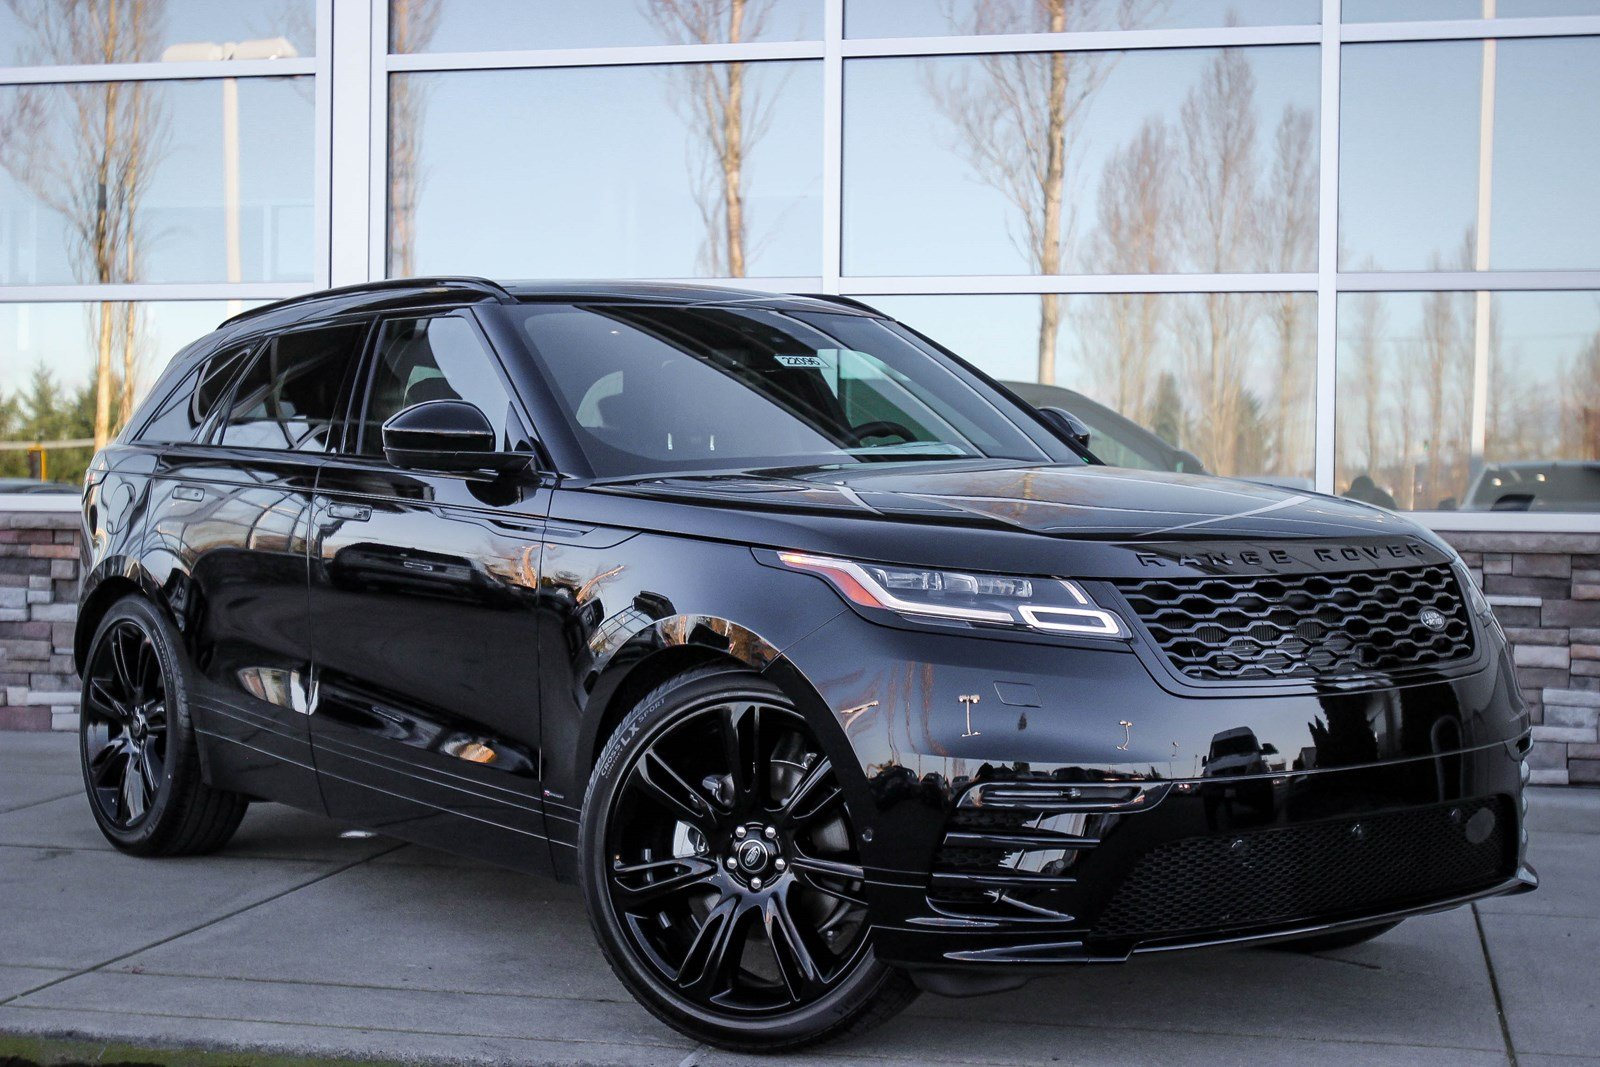 Land Rover Bellevue >> New 2018 Land Rover Range Rover Velar R-Dynamic HSE Sport Utility in Bellevue #22096 | Land ...